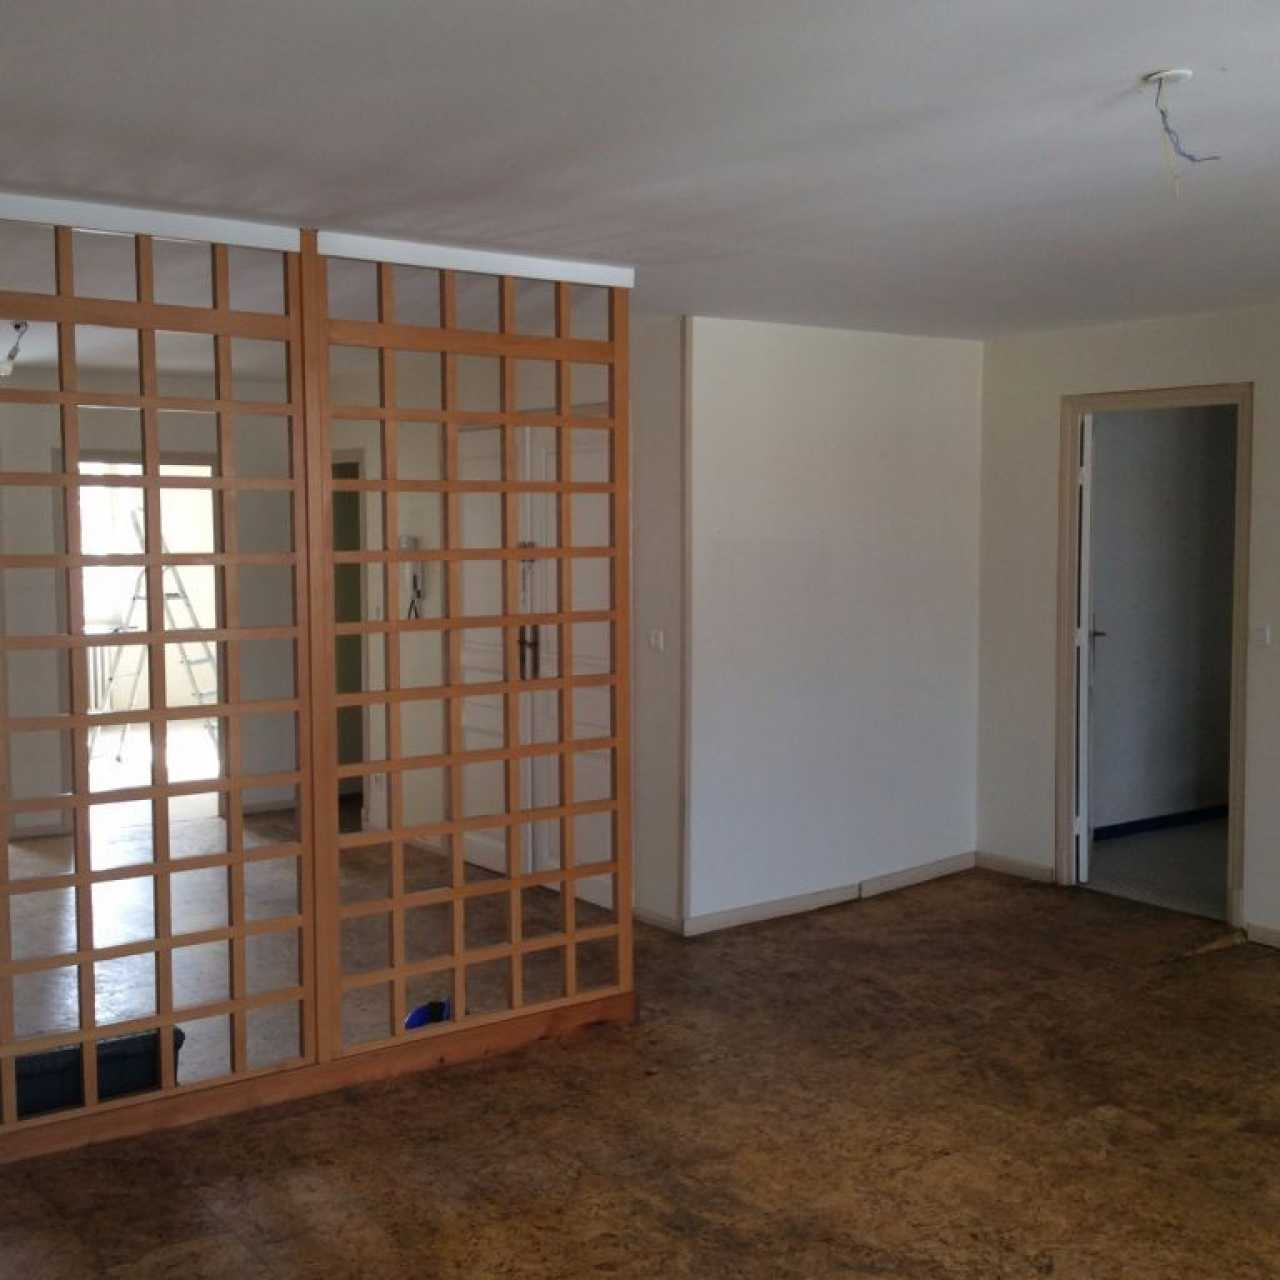 Apartment CARCASSONNE | 580 € / month